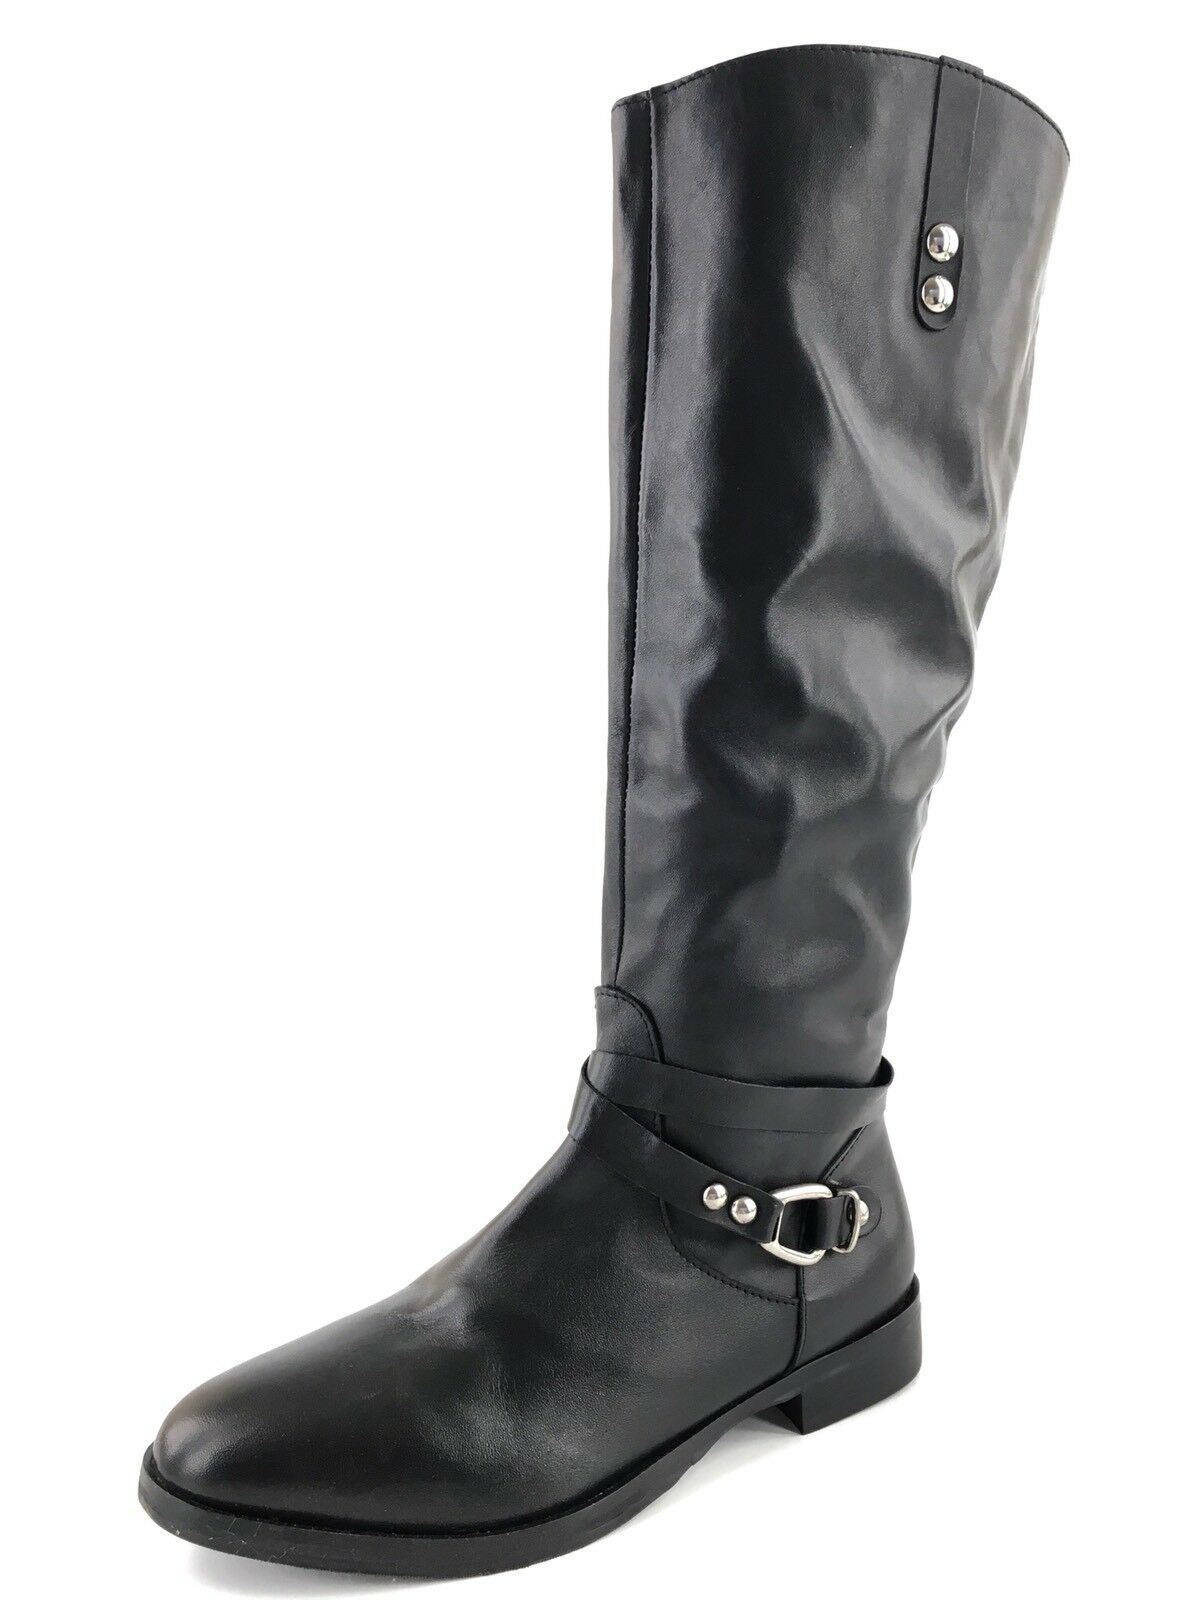 New Charles David Rene Black Leather Knee High Boots Women's Size 7 M